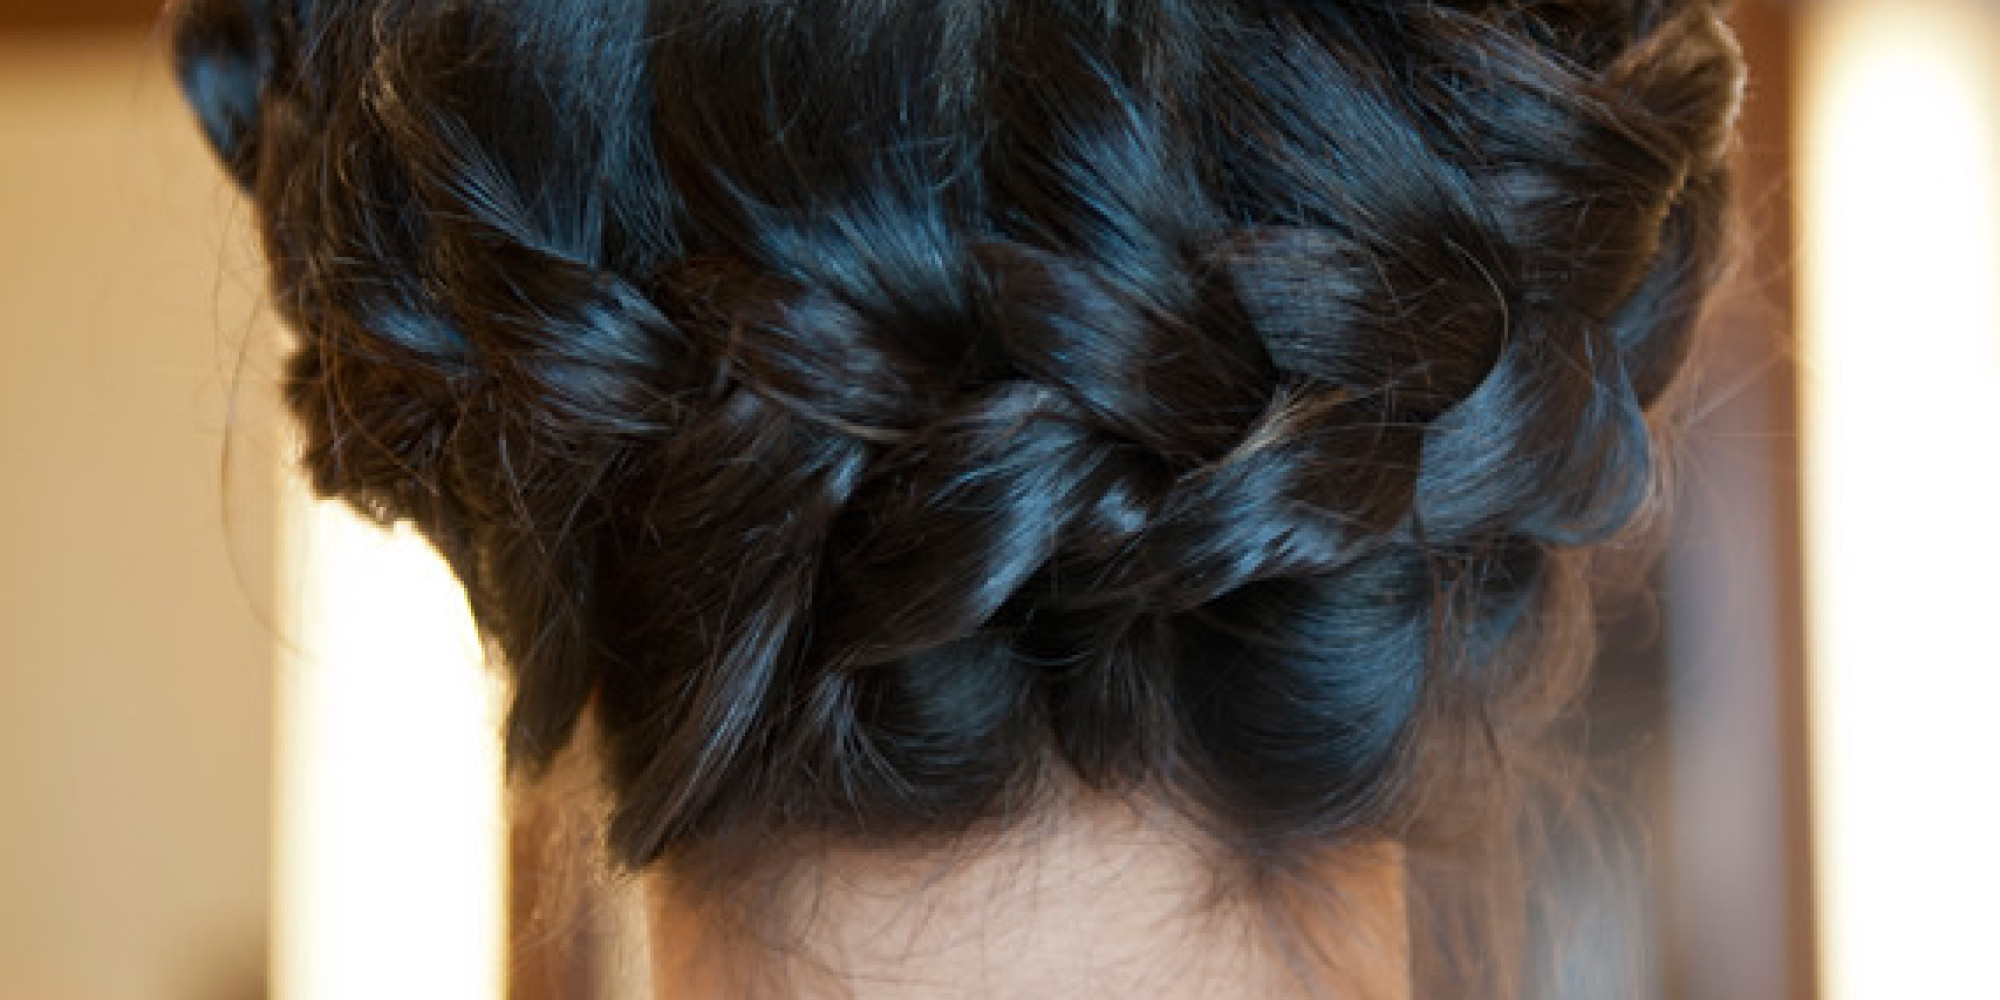 How to do two braids on each side